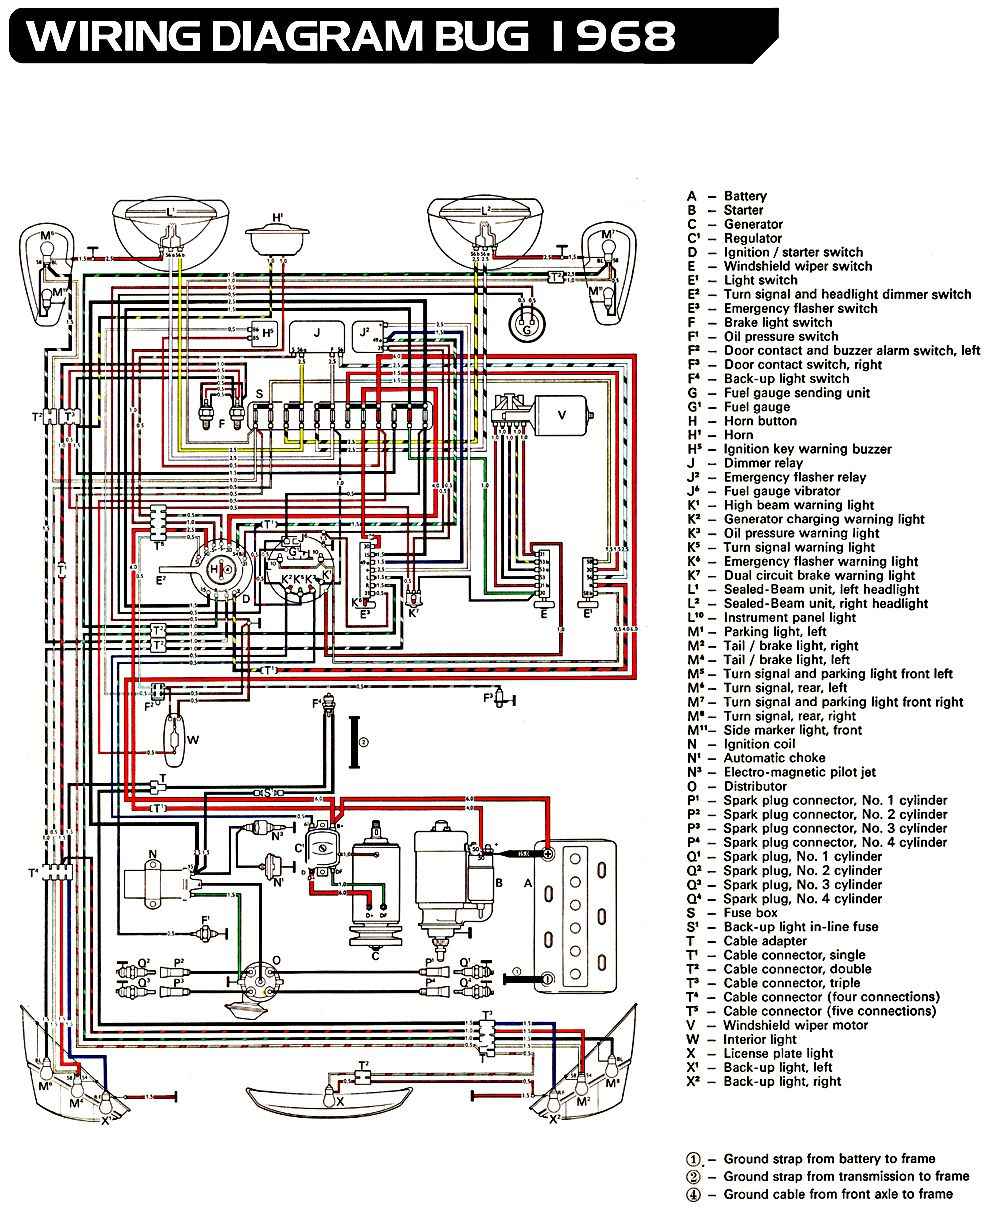 Vw Bug Wiring Diagram - Wiring Diagram G8 Vw Cabriolet Ignition Wiring Diagram on vw type 3 wiring diagram, vw wiring harness, vw bug wiring diagram, 2011 vw jetta tdi fuse diagram, 2011 vw jetta fuse panel diagram, vw door wiring diagram, vw ecu wiring diagram, vw charging system diagram, vw exhaust diagram, vw shift linkage diagram, 1977 vw bus wiring diagram, vw ignition lock cylinder diagram, vw distributor diagram, 2000 hyundai accent radio wiring diagram, vw parking brake diagram, system of a car ignition electrical diagram, 1964 chevy wiring diagram, vw coil diagram, 2006 gsxr 600 fuel pump wiring diagram, code 3 light bar wiring diagram,